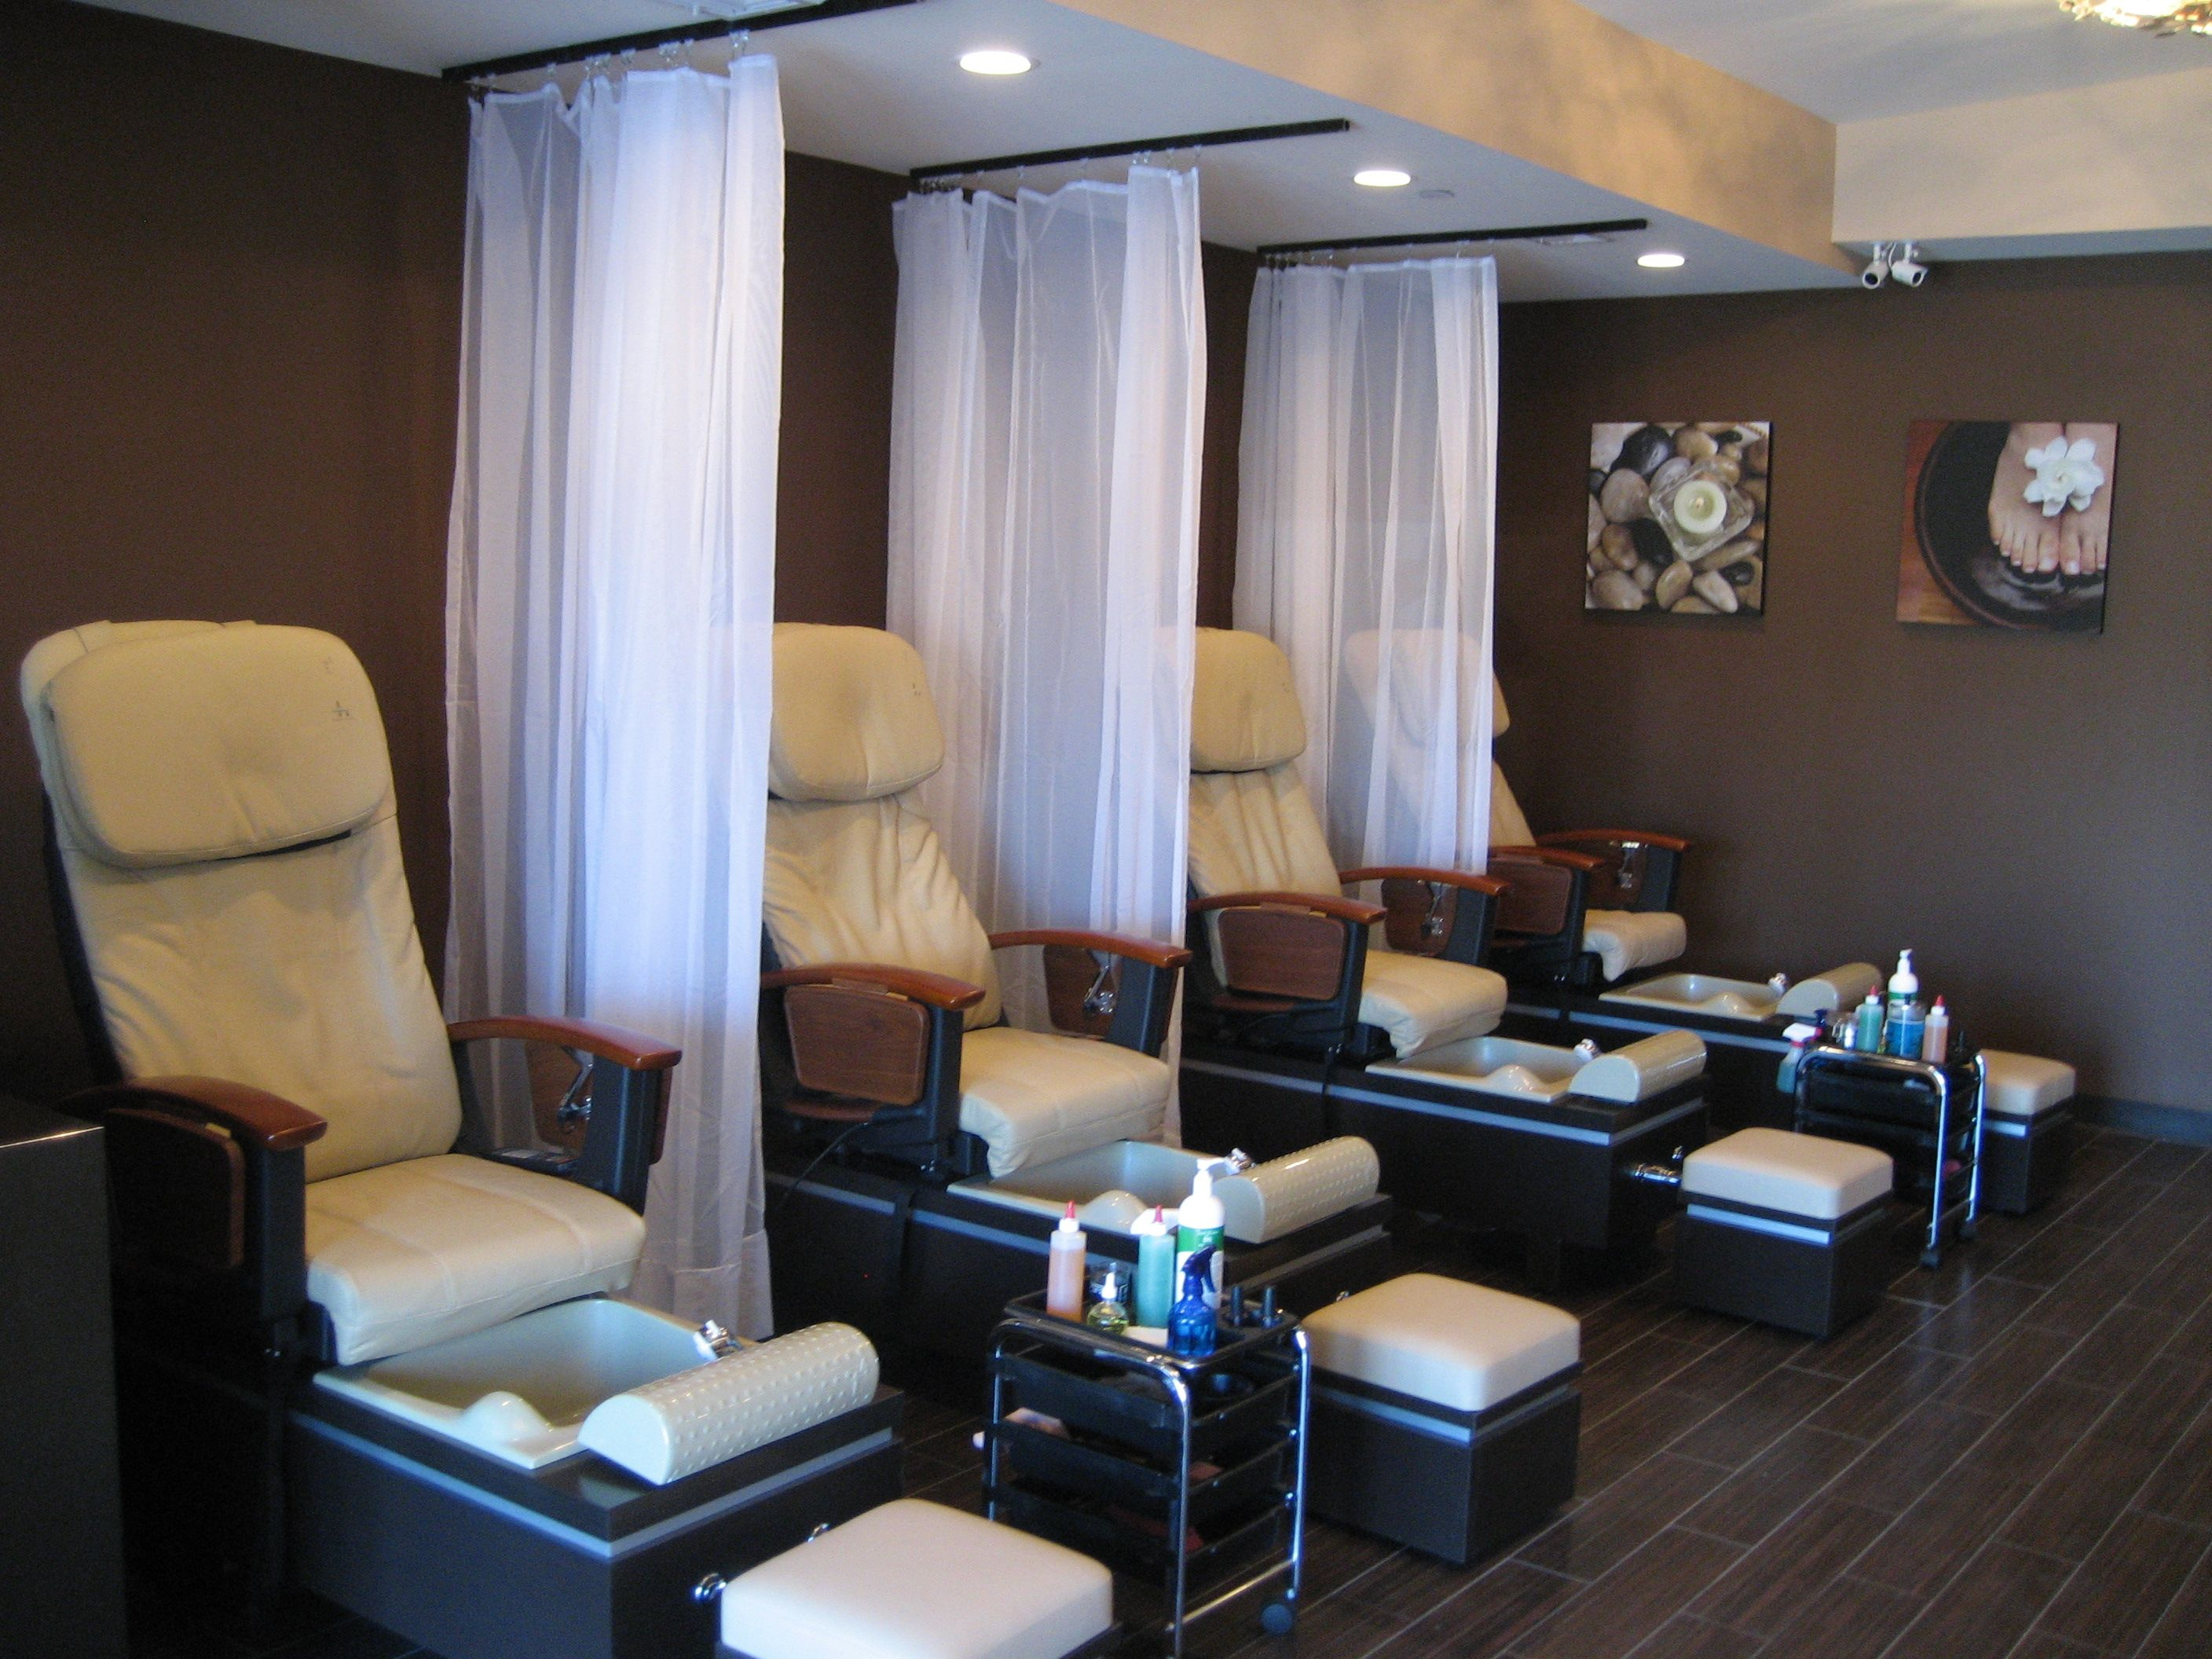 small nail salon interior designs google search - Nail Salon Interior Design Ideas